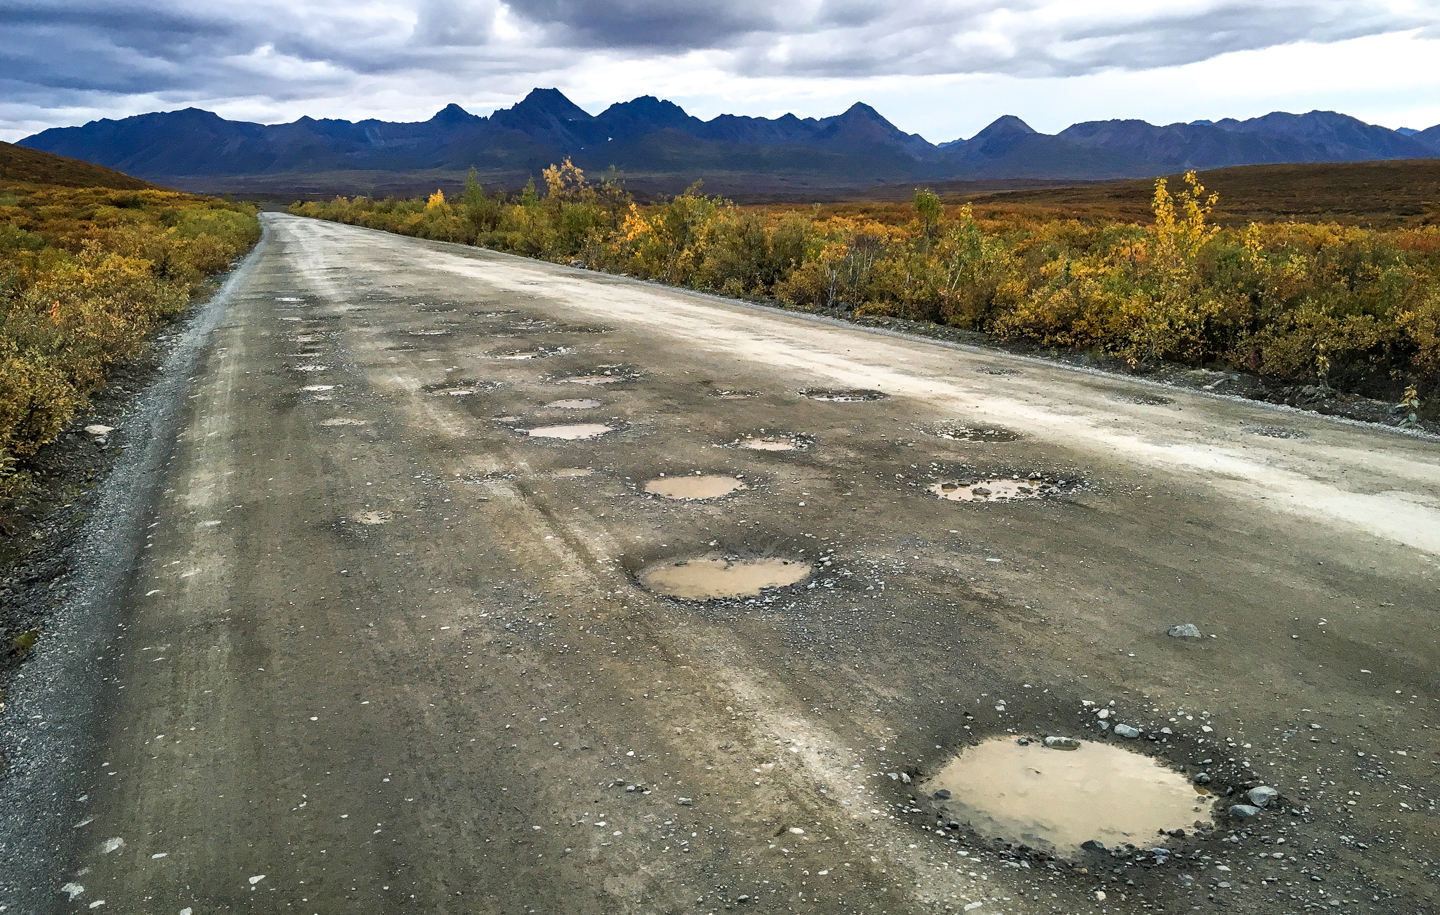 Alcan Potholes - The potholes between Whitehorse and Palmer are intense; it's essentially 662 miles of switchbacks, trees, and potholes that will make you see Jesus. Photo Source.